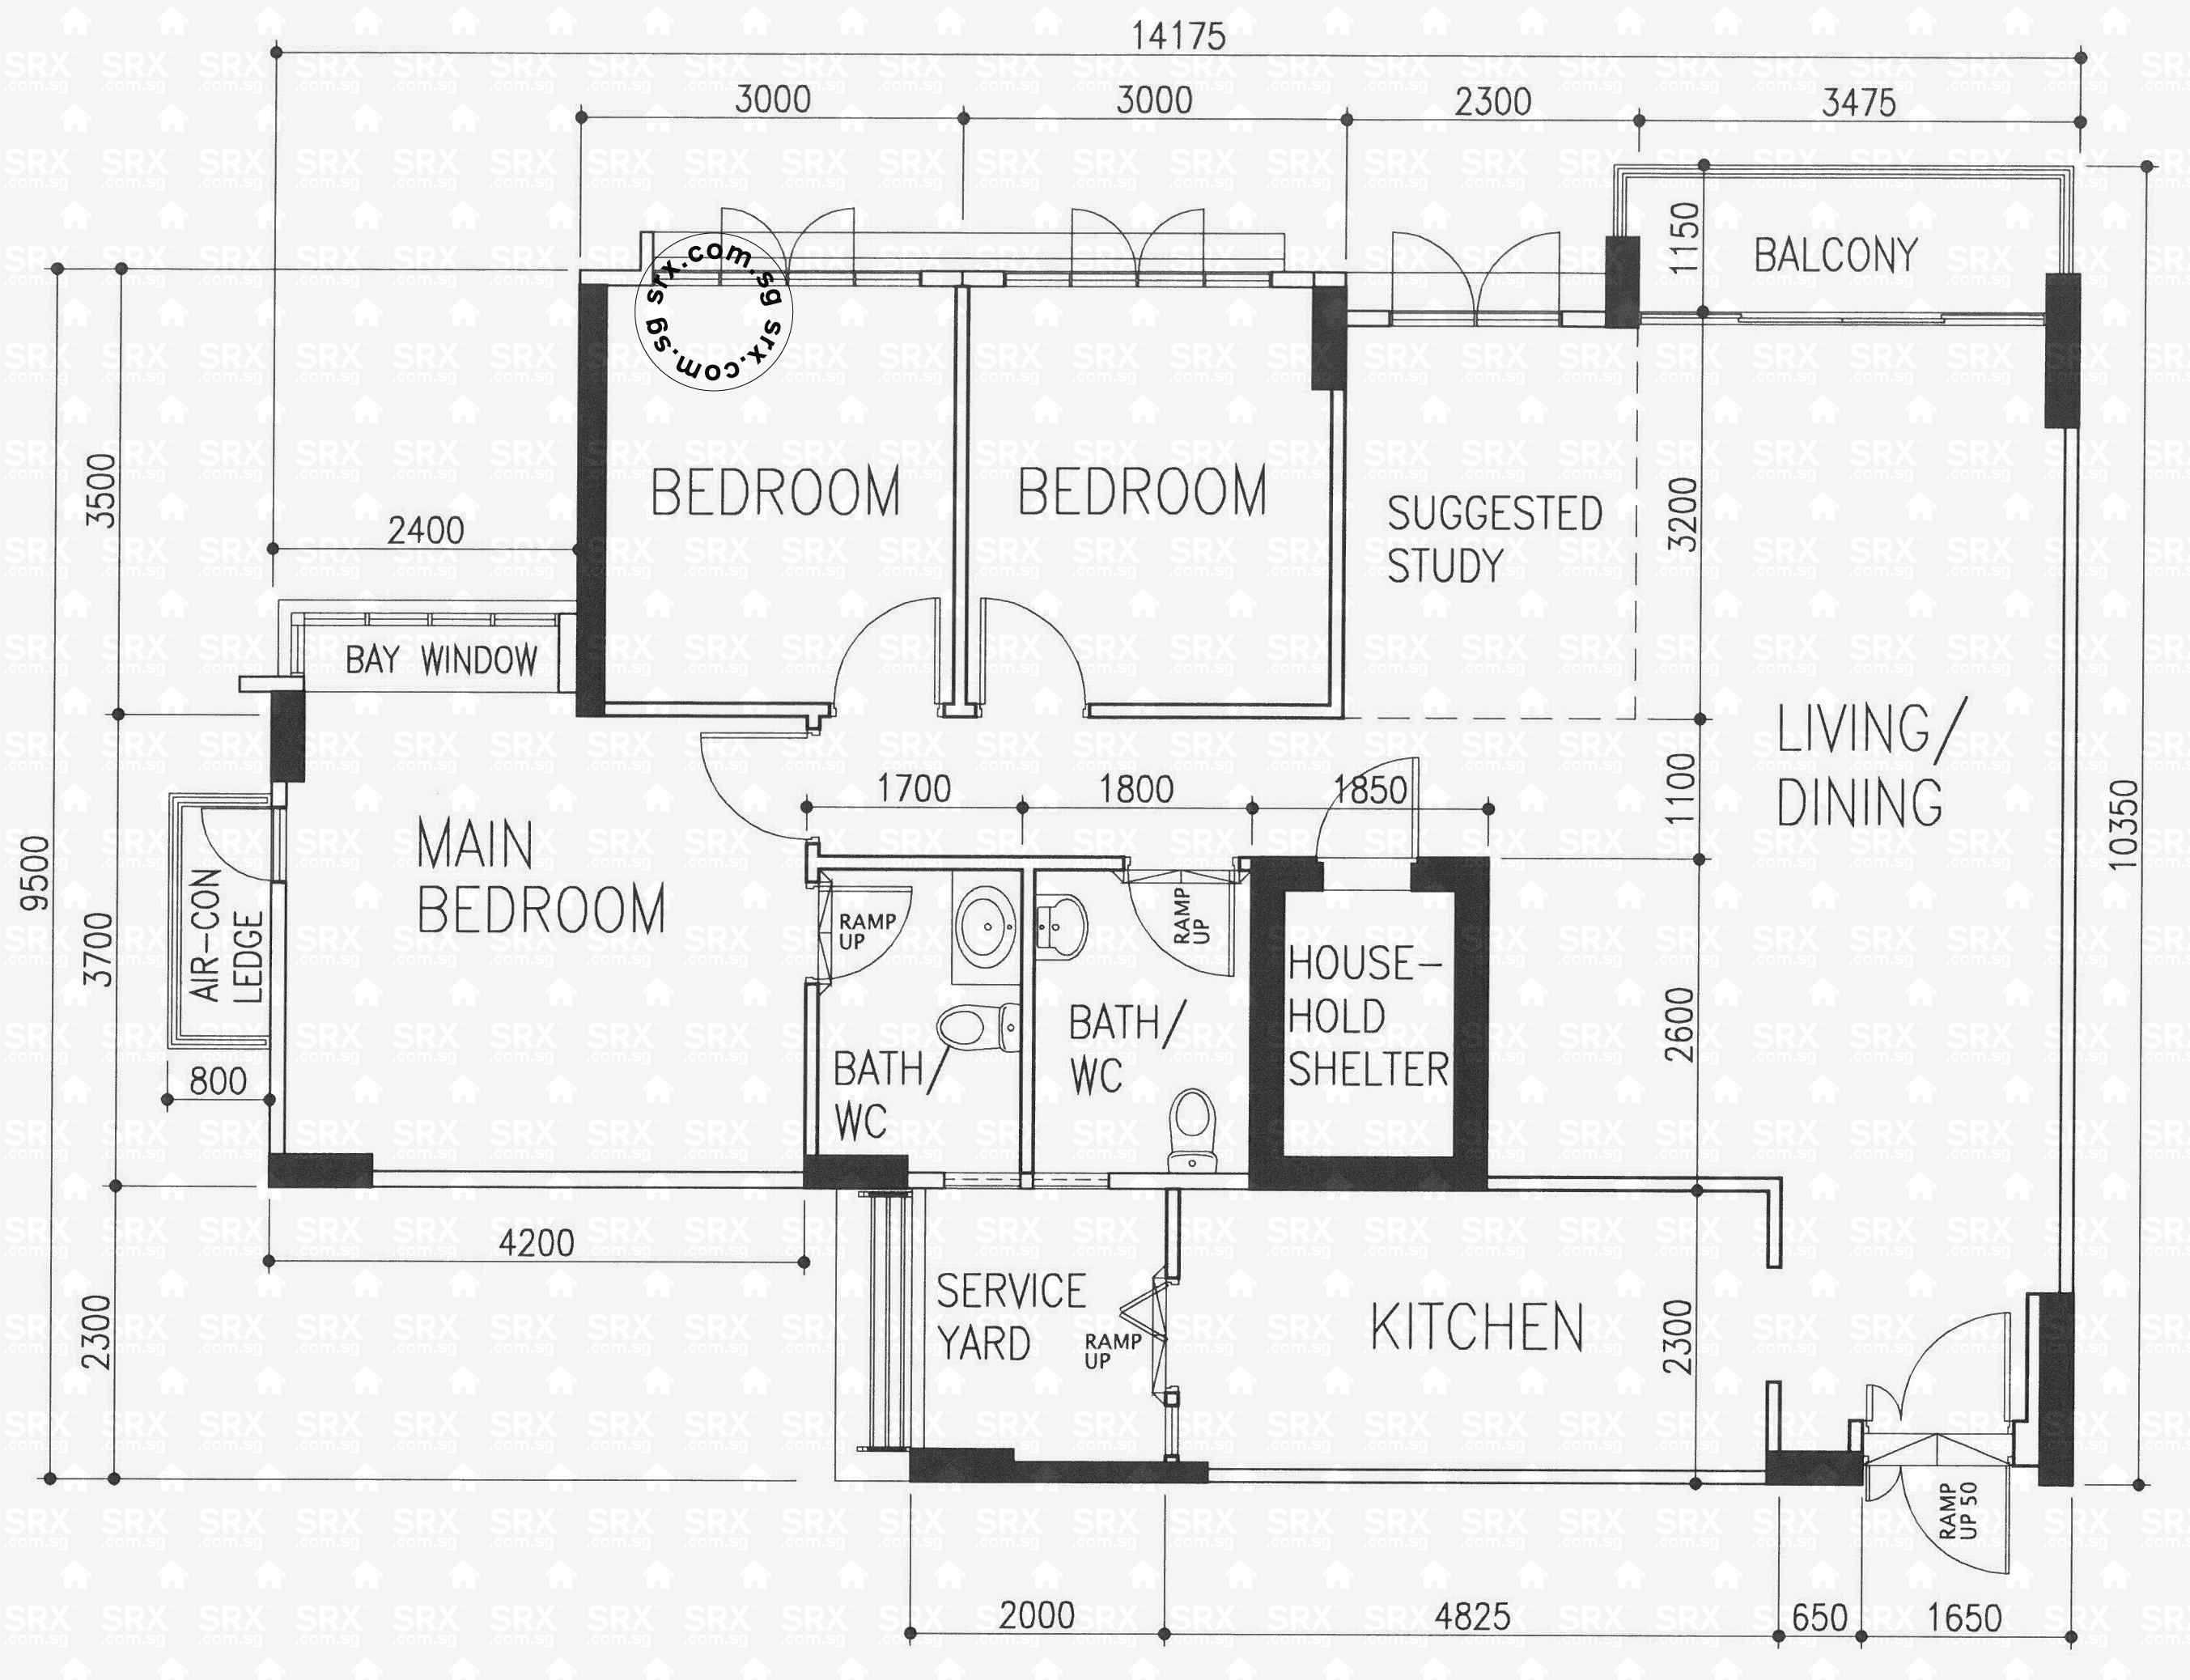 Floor plans for 273c punggol place s 823273 hdb details for 15 dunham place floor plans